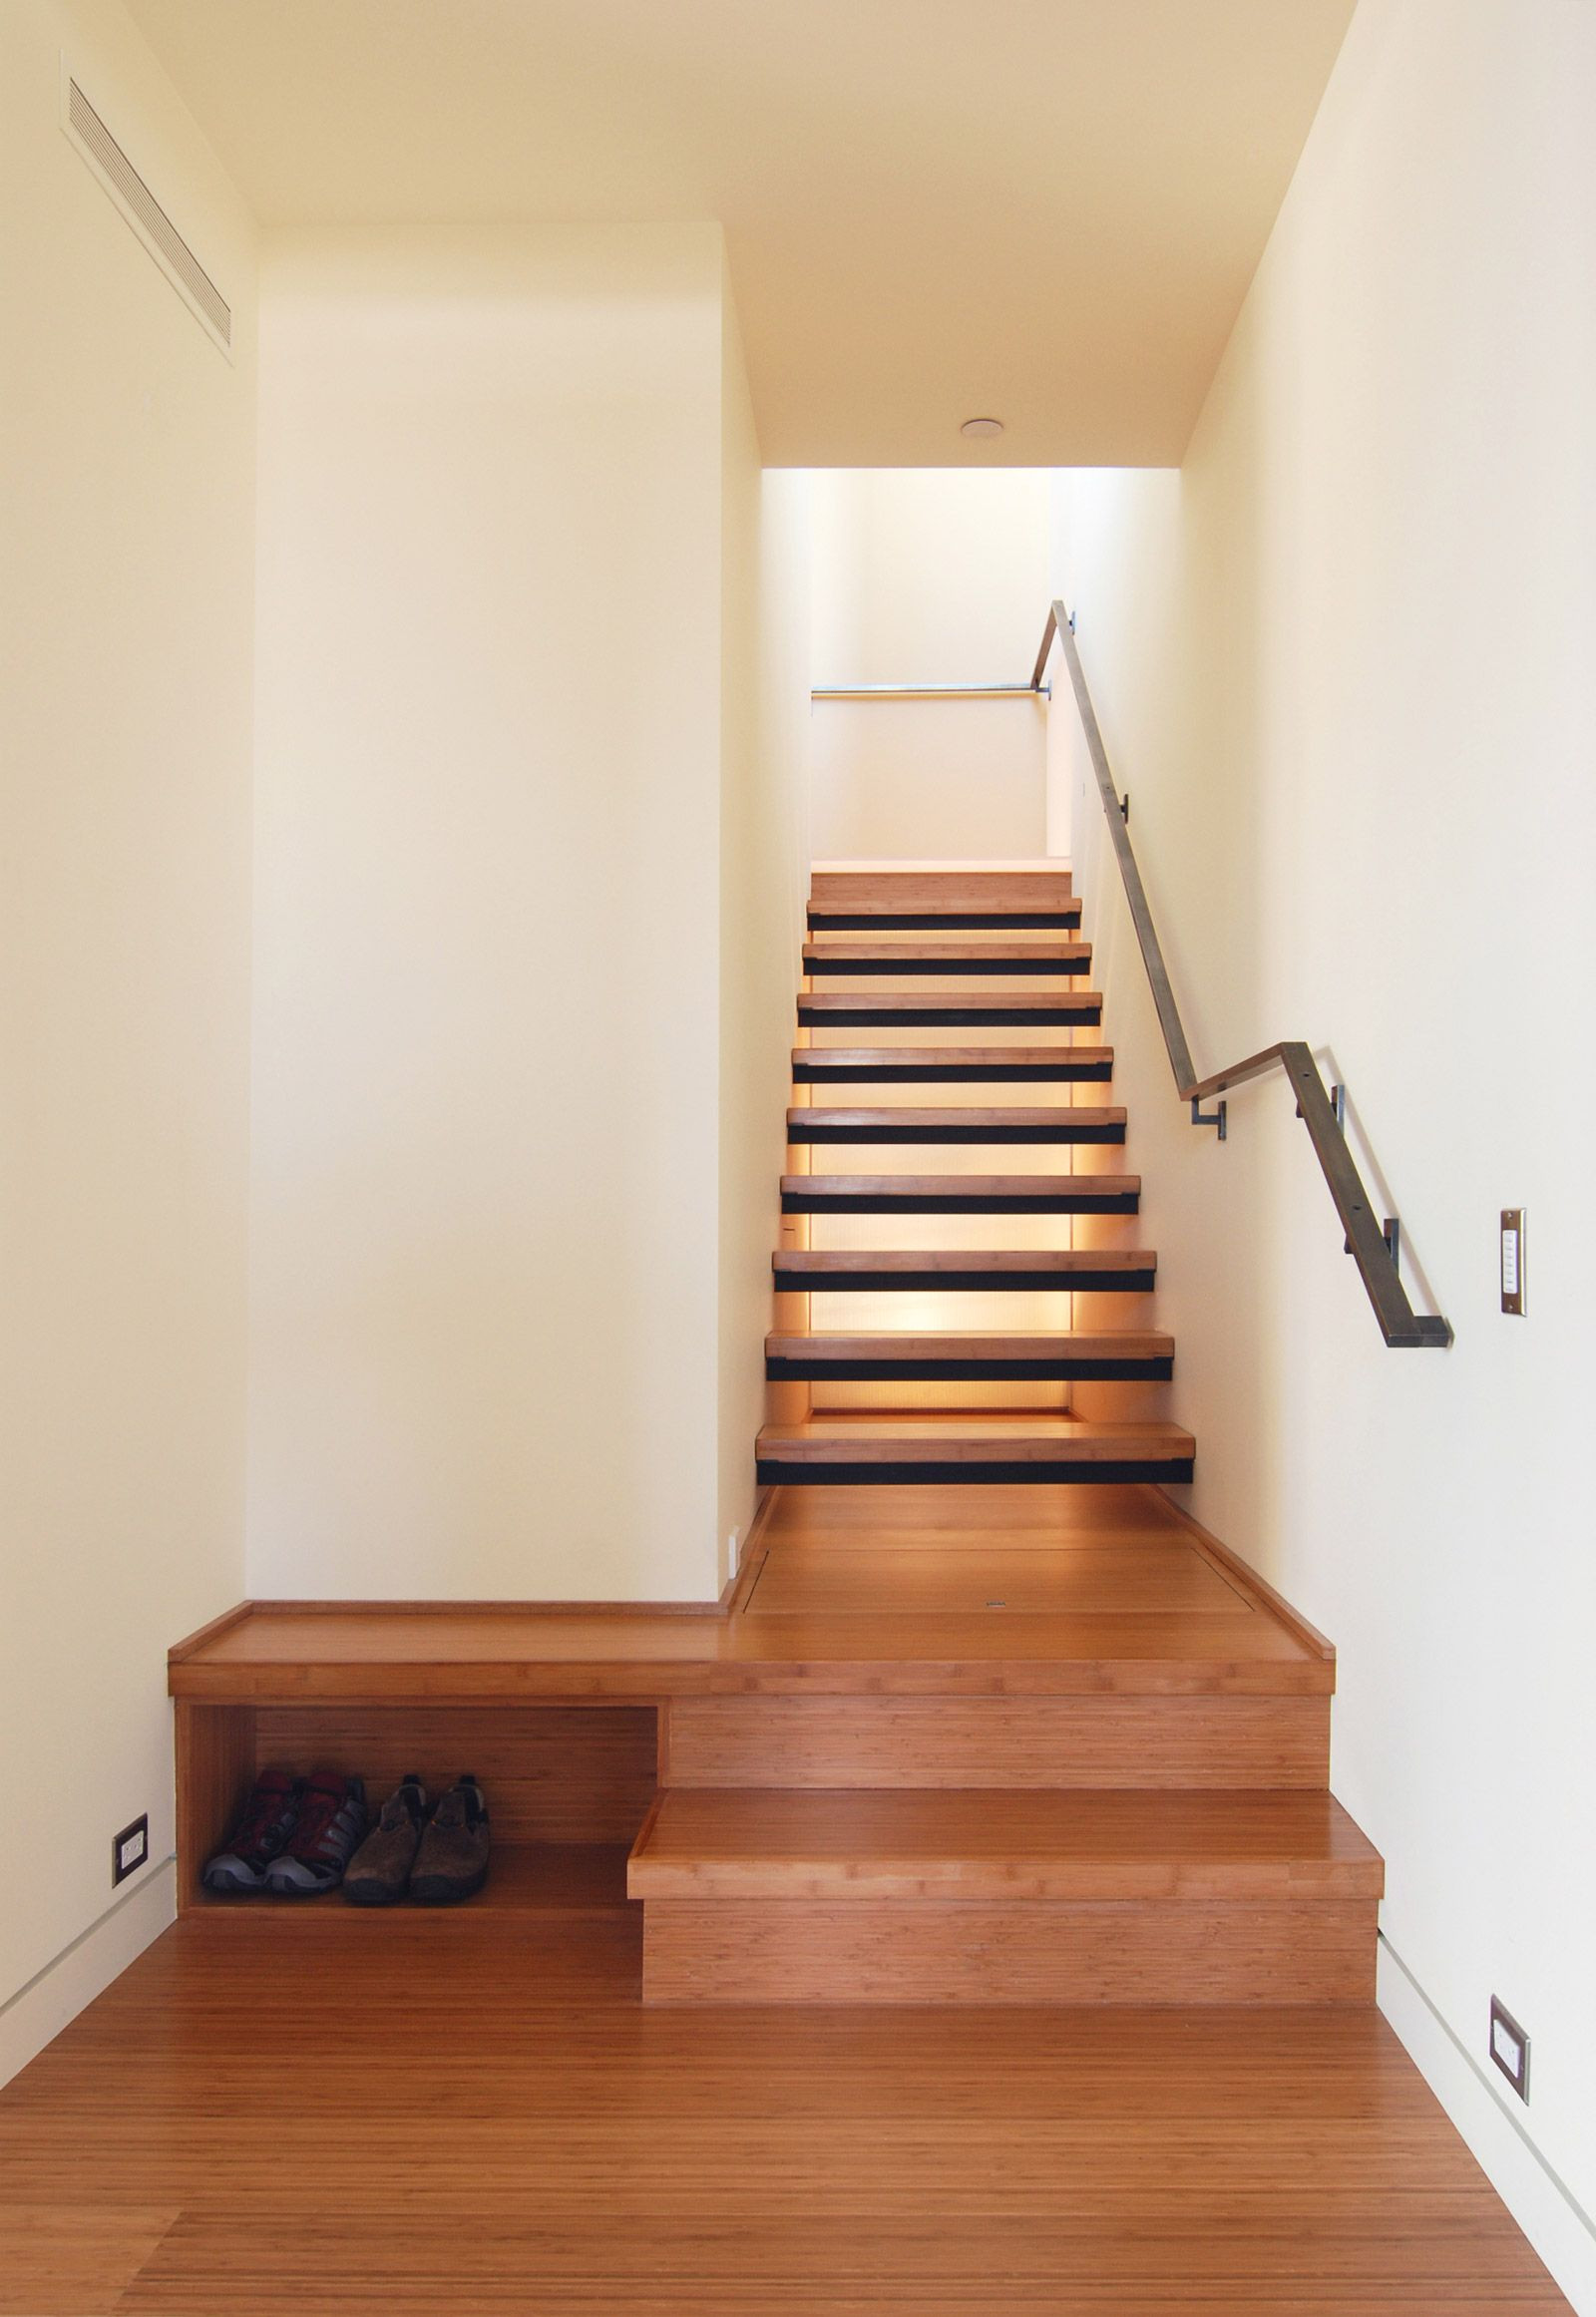 hardwood floor around stairs of a visual guide to stairs these stairs pinterest stairs within solid walls on both sides of stair with open risers window room behind